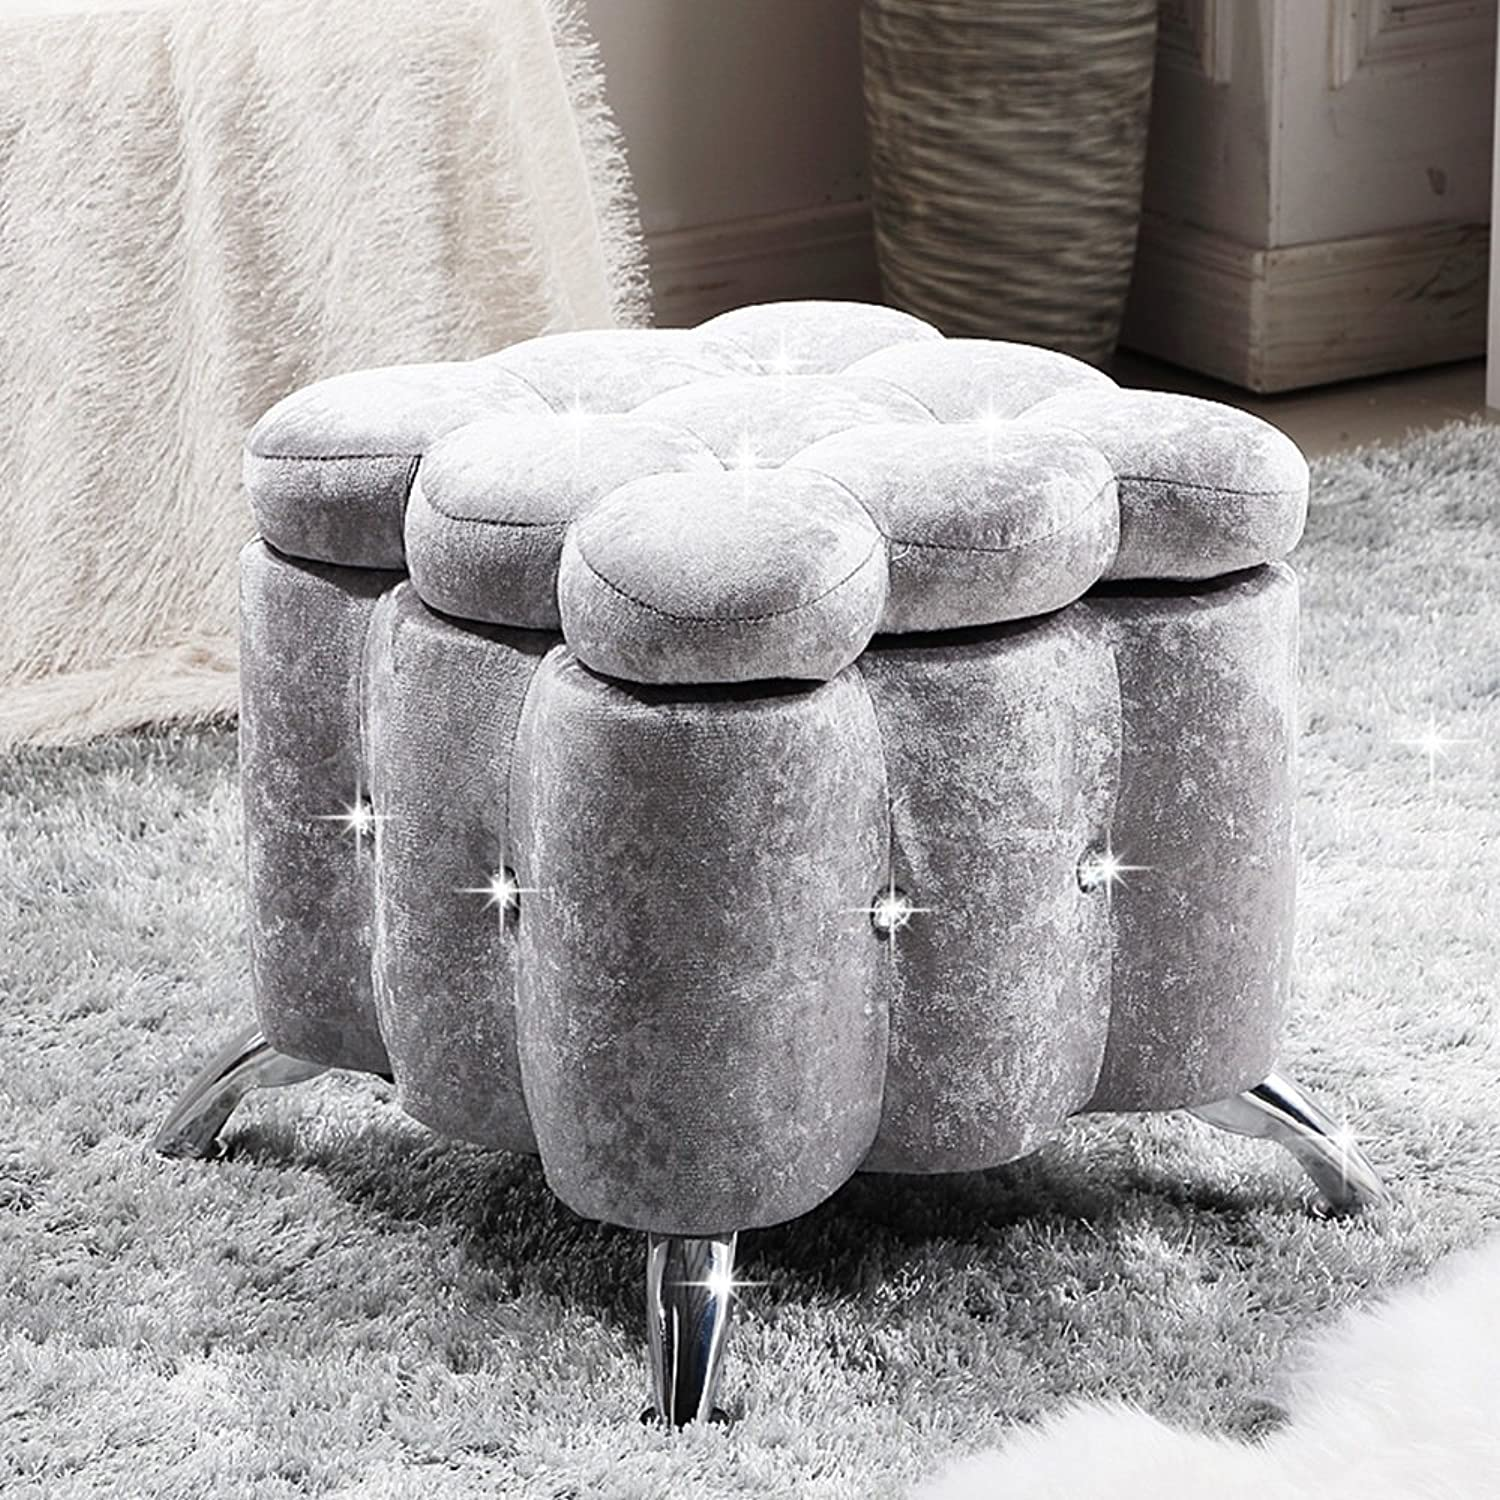 ZHANGRONG- Creative Square Admission Sofa Stool European - Style Cloth shoes for shoes Stool Clothing Store Sofa Stool (color Optional) (color    6)